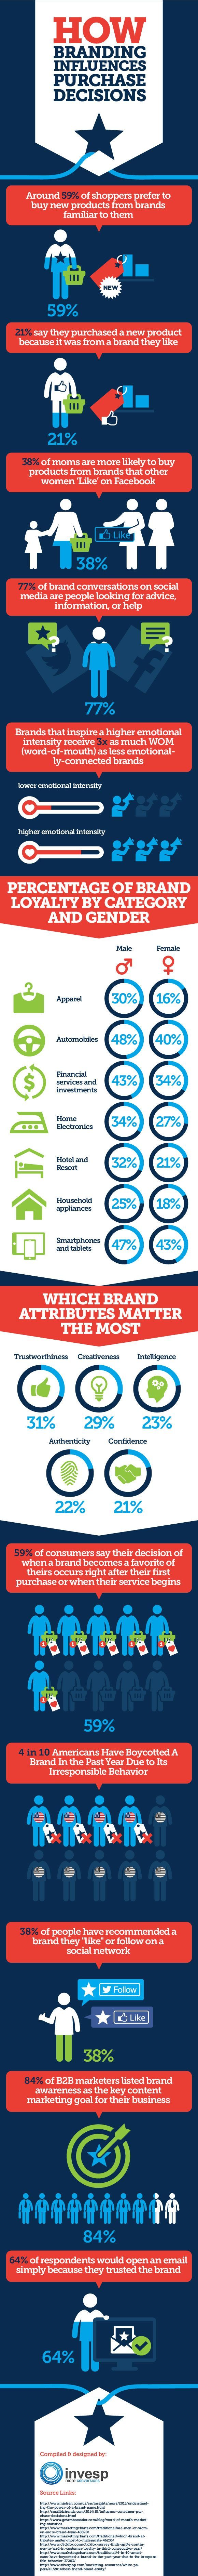 How Branding Influences Purchase Decisions #Infographic #Branding